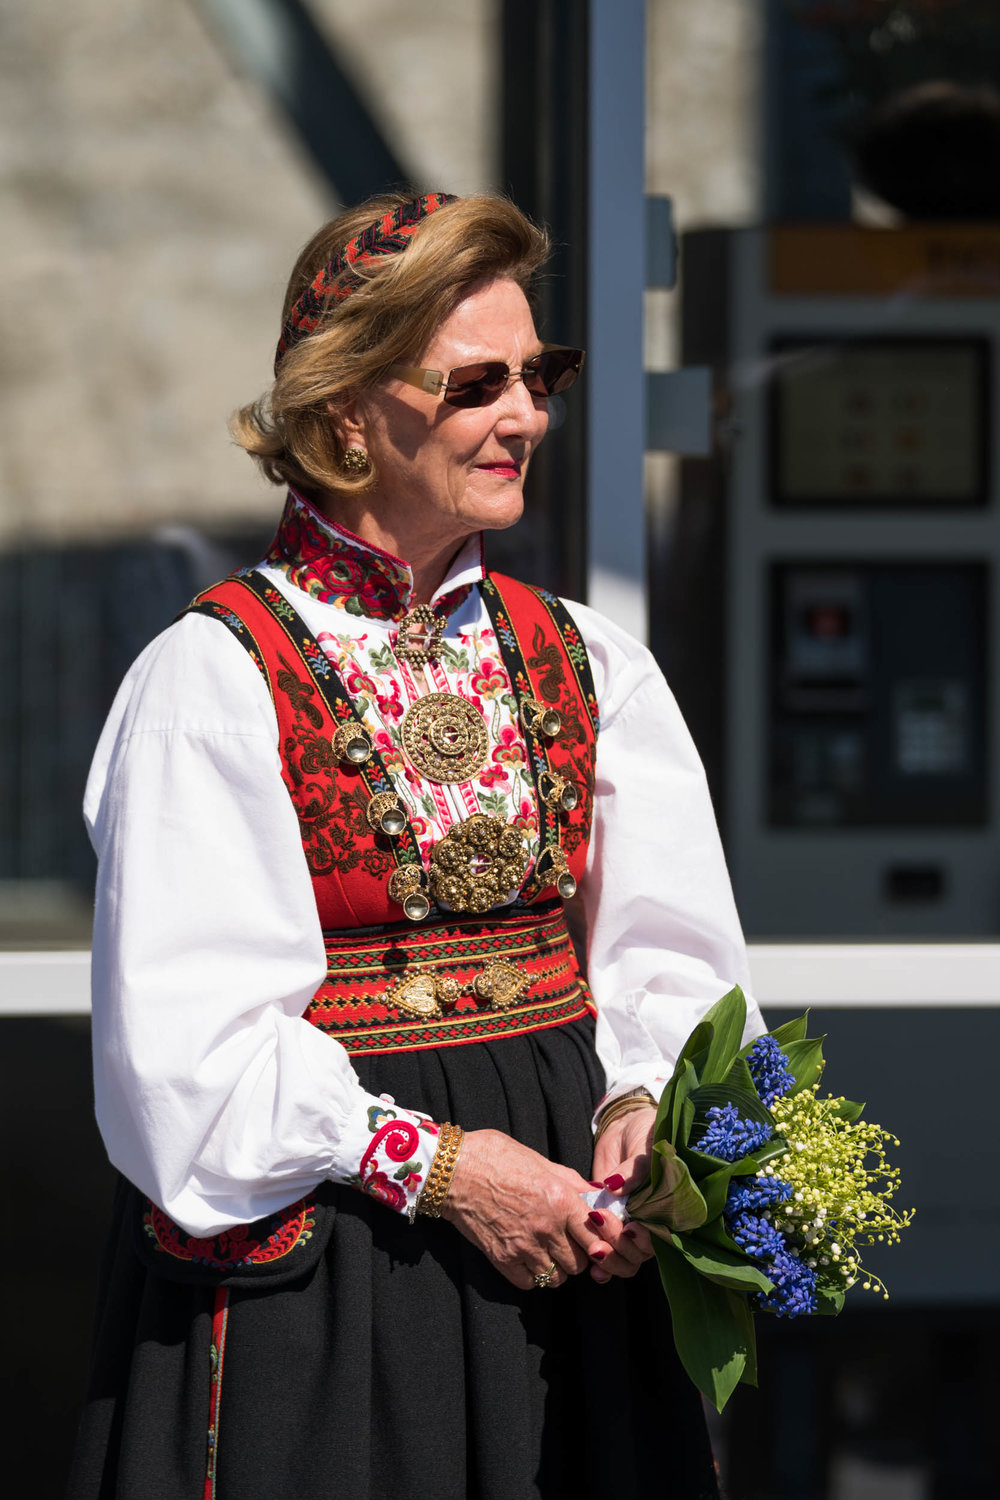 OFFFICIAL OPENING OF LOEN SKYLIFT 20TH OF MAY 2017  Her Majesty, Queen Sonja made the official opening of Loen Skylift.  See photos from this magnificent day.